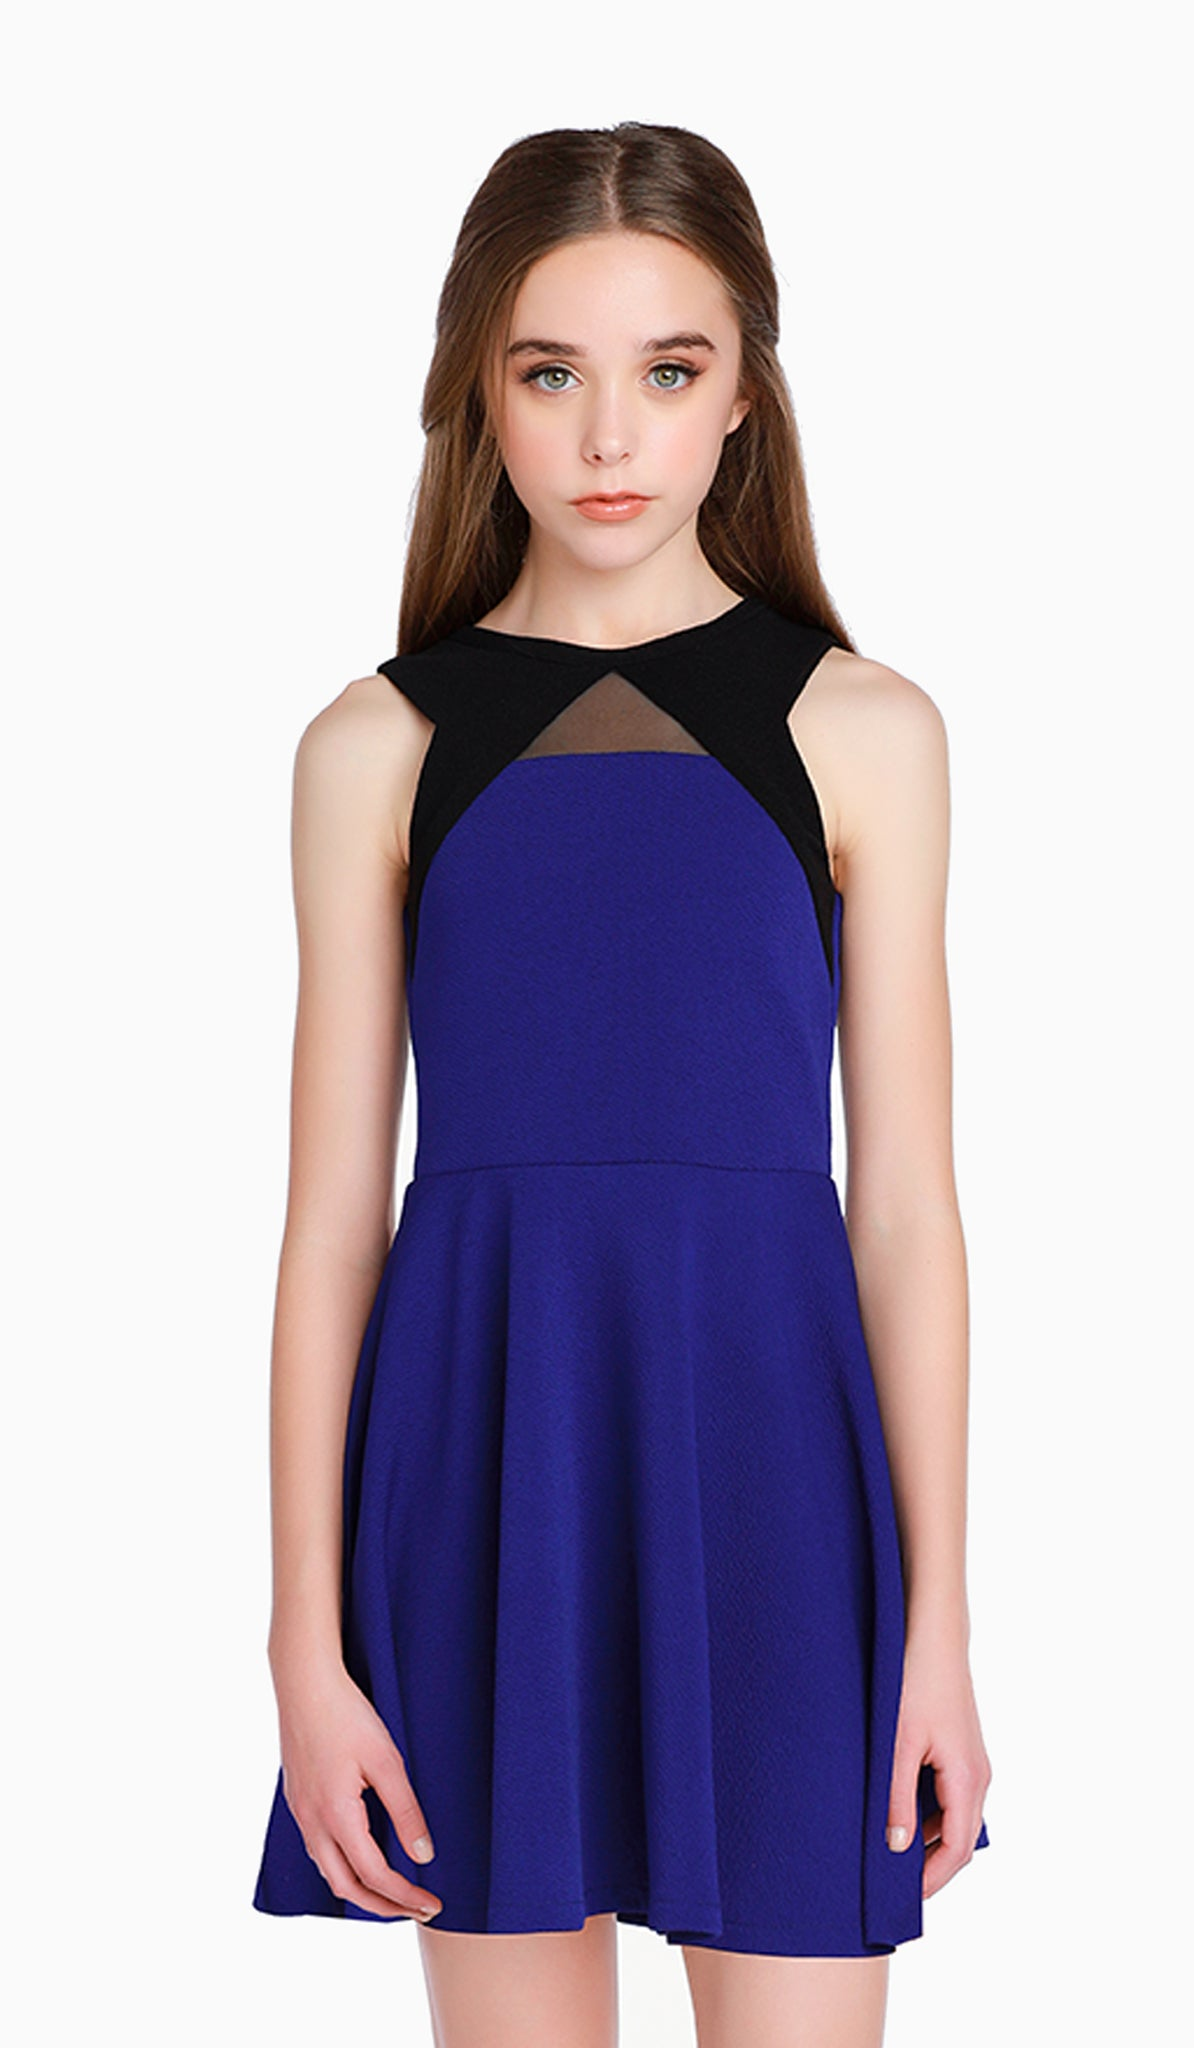 THE CARLY DRESS - Sallymiller.com - [variant title] - | Event & Party Dresses for Tween Girls & Juniors | Weddings Dresses, Bat Mitzvah Dresses, Sweet Sixteen Dresses, Graduation Dresses, Birthday Party Dresses, Bar Mitzvah Dresses, Cotillion Dresses